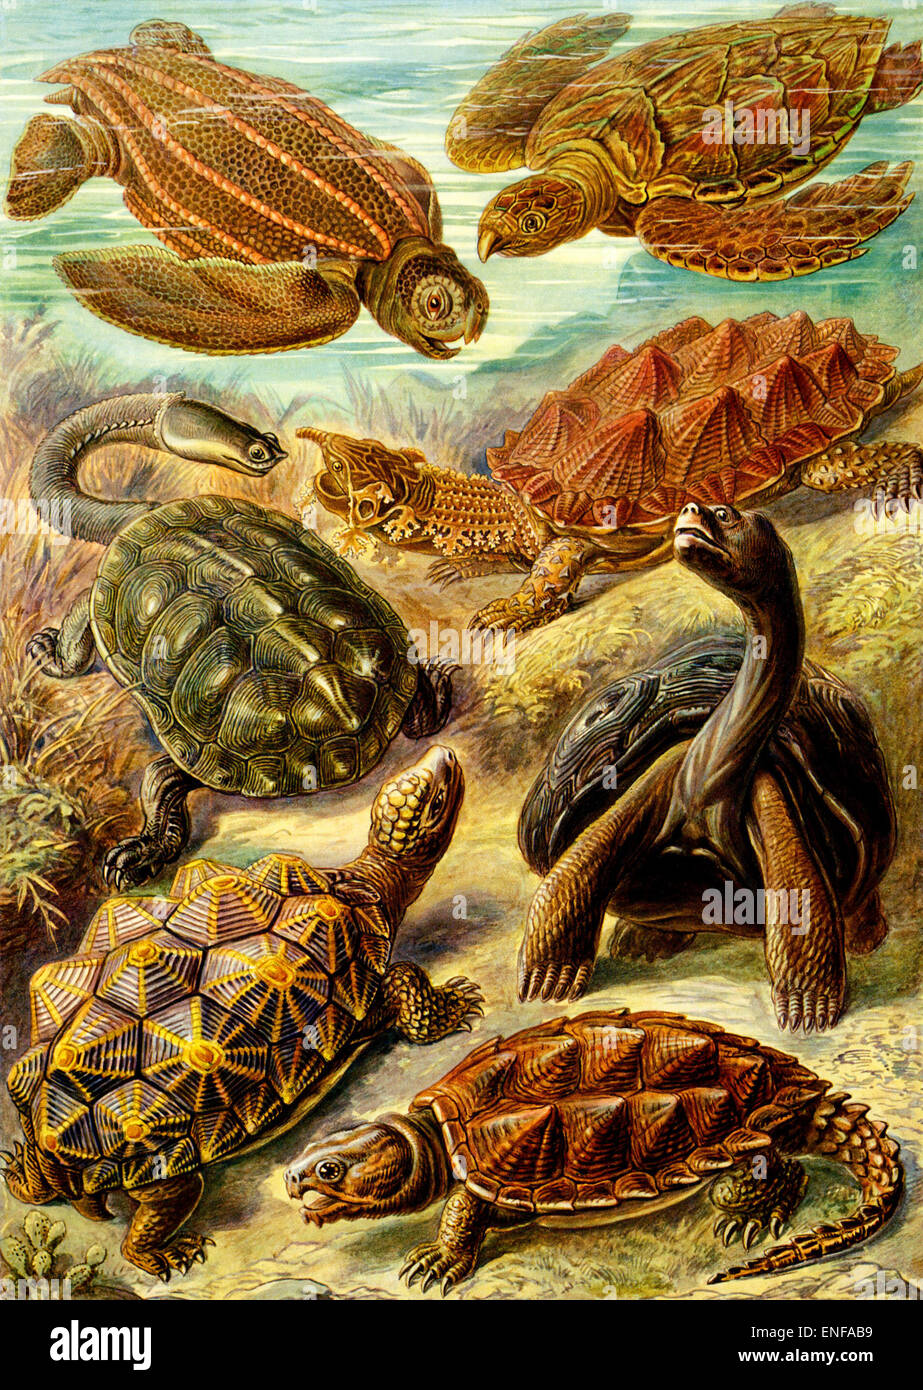 Chelonia (Turtles and Tortoises), by Ernst Haeckel, 1904 - Editorial use only. - Stock Image